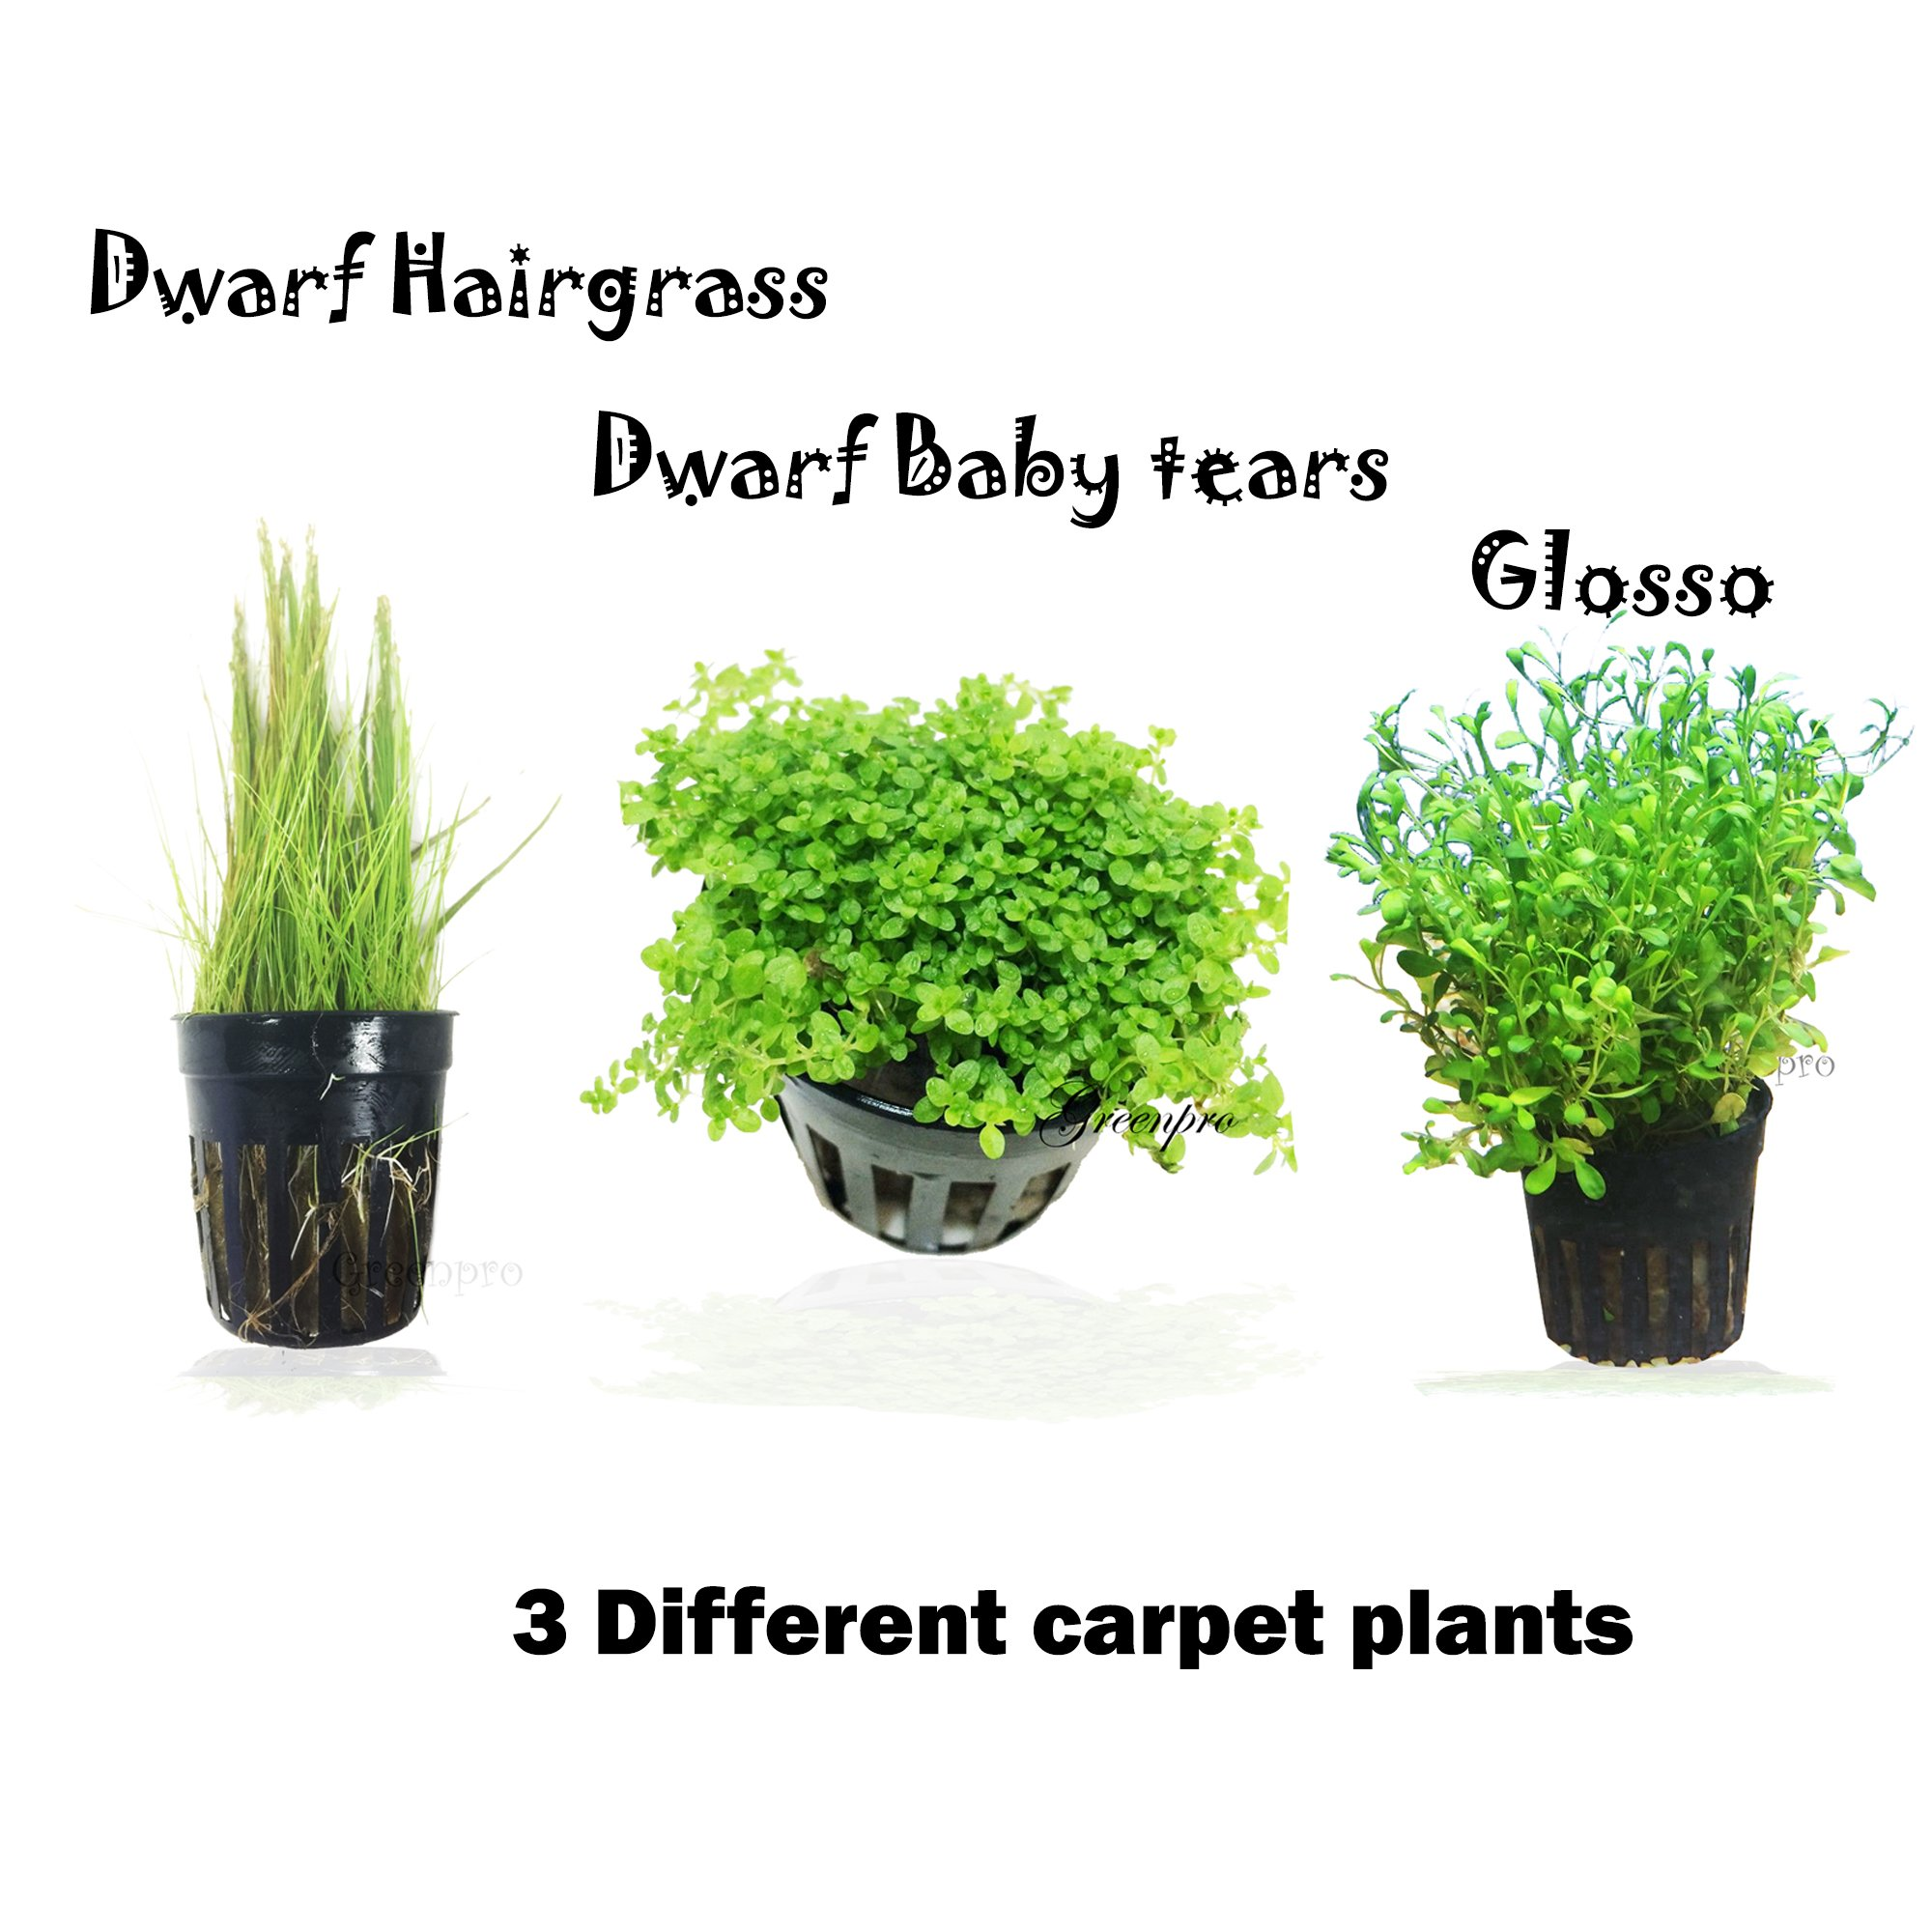 3 Carpet Plants Package Dwarf Baby Tears Dwarf Hairgrass and Glosso Potted Live Aquatic for Aquarium Freshwater Fish Tank by Greenpro by GreenPro